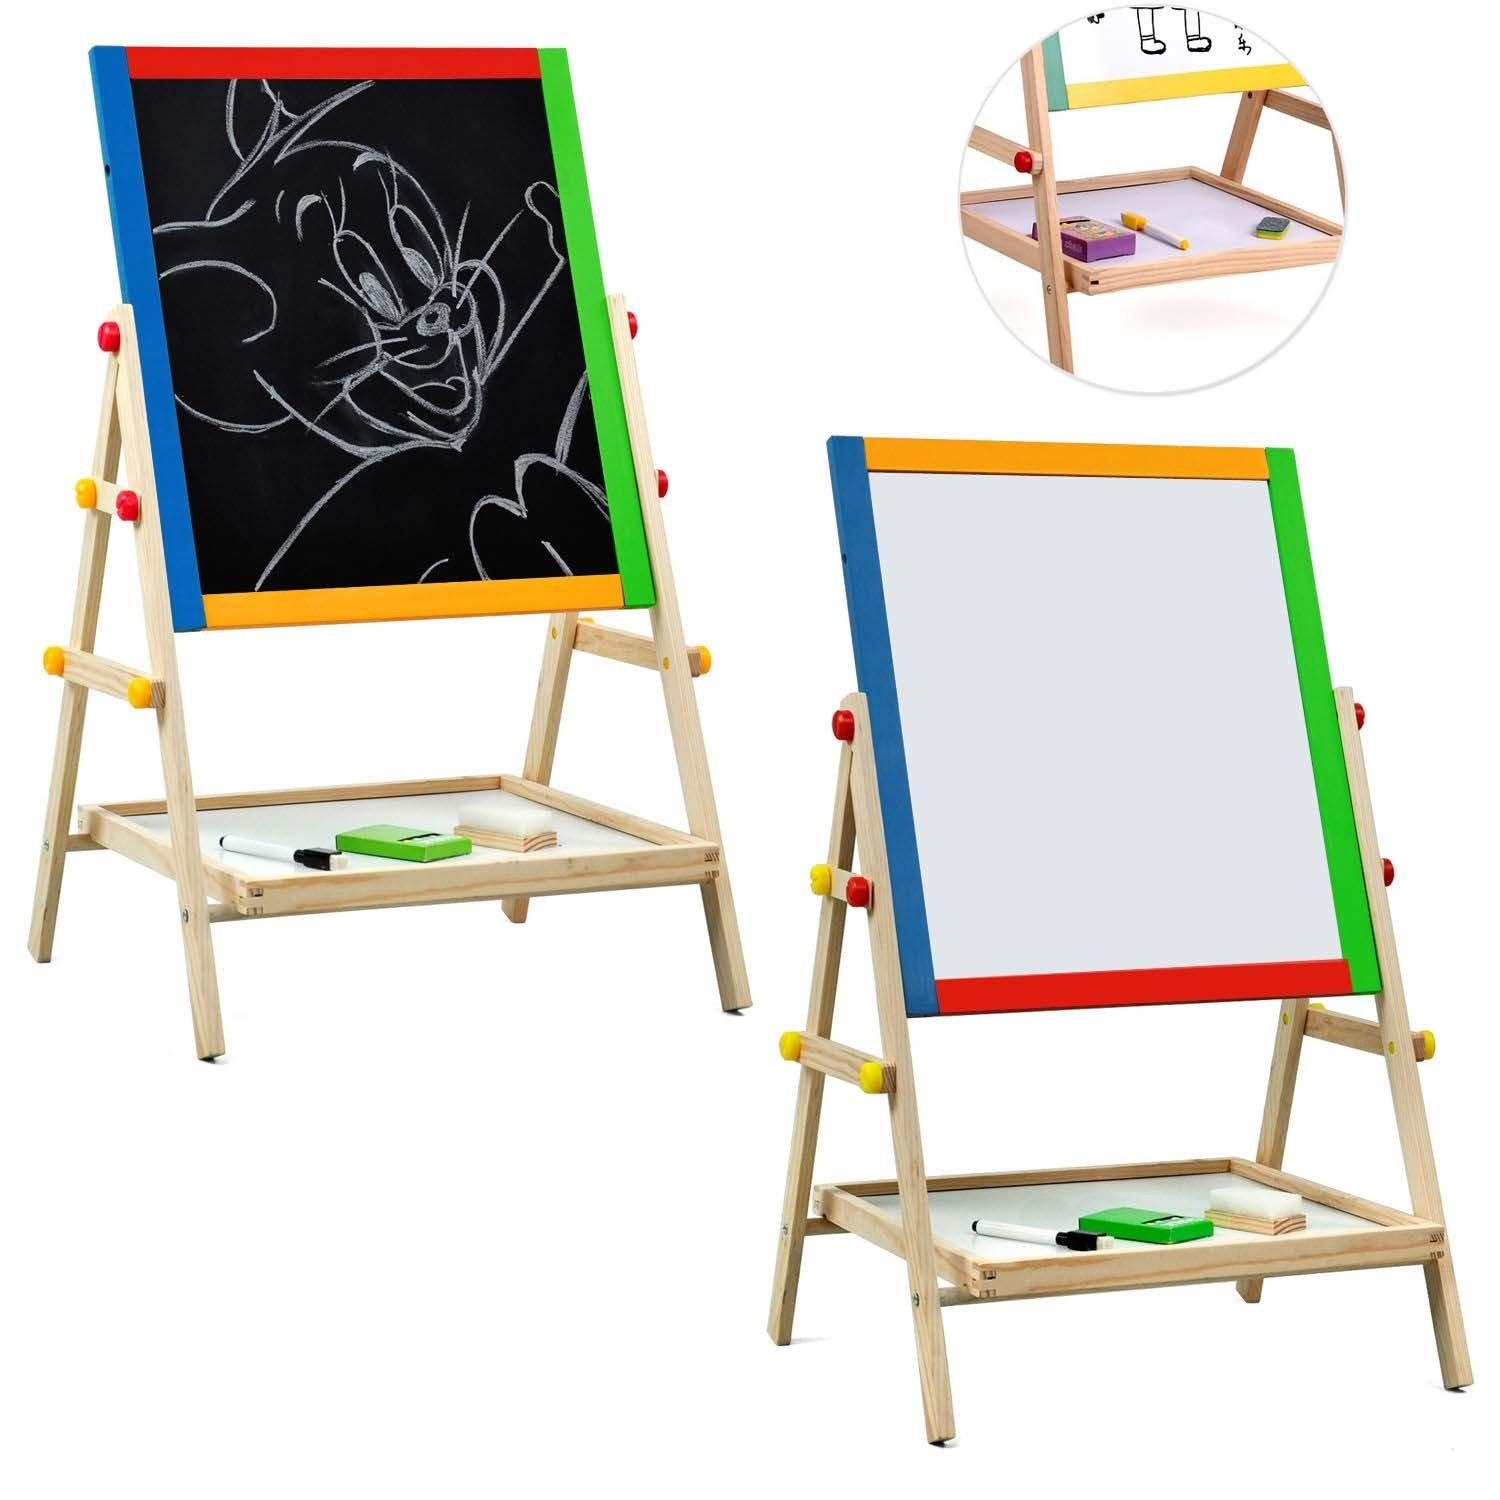 Large Adjustable Children Kids 2 In 1 Black White Wooden EaselDrawing Board by Worldpride1 (Image #2)